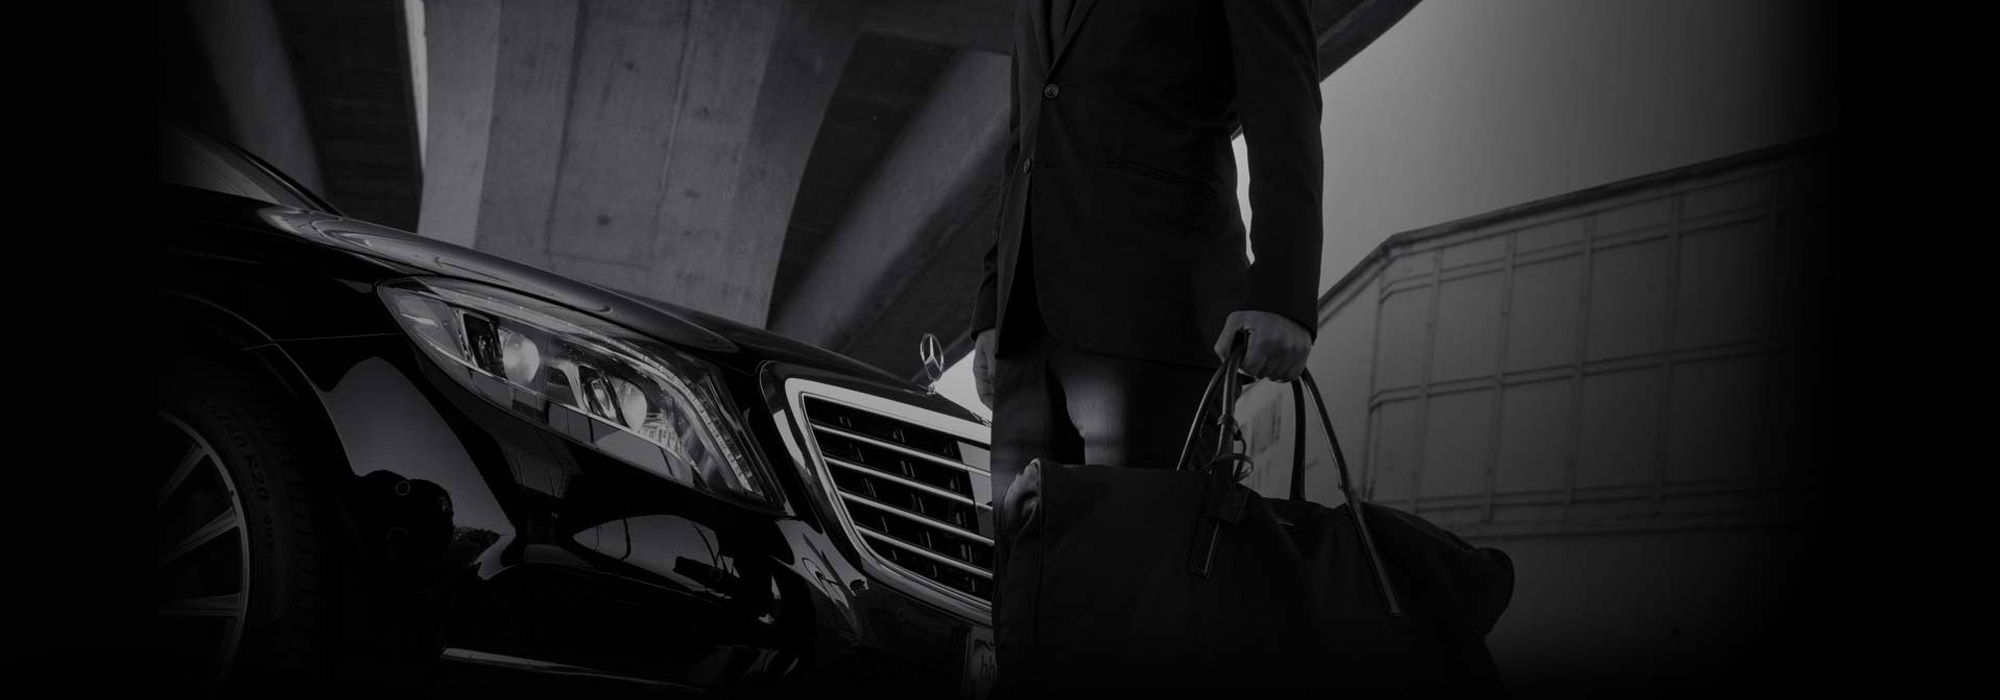 corporate event chauffeur Car Hire Dubai